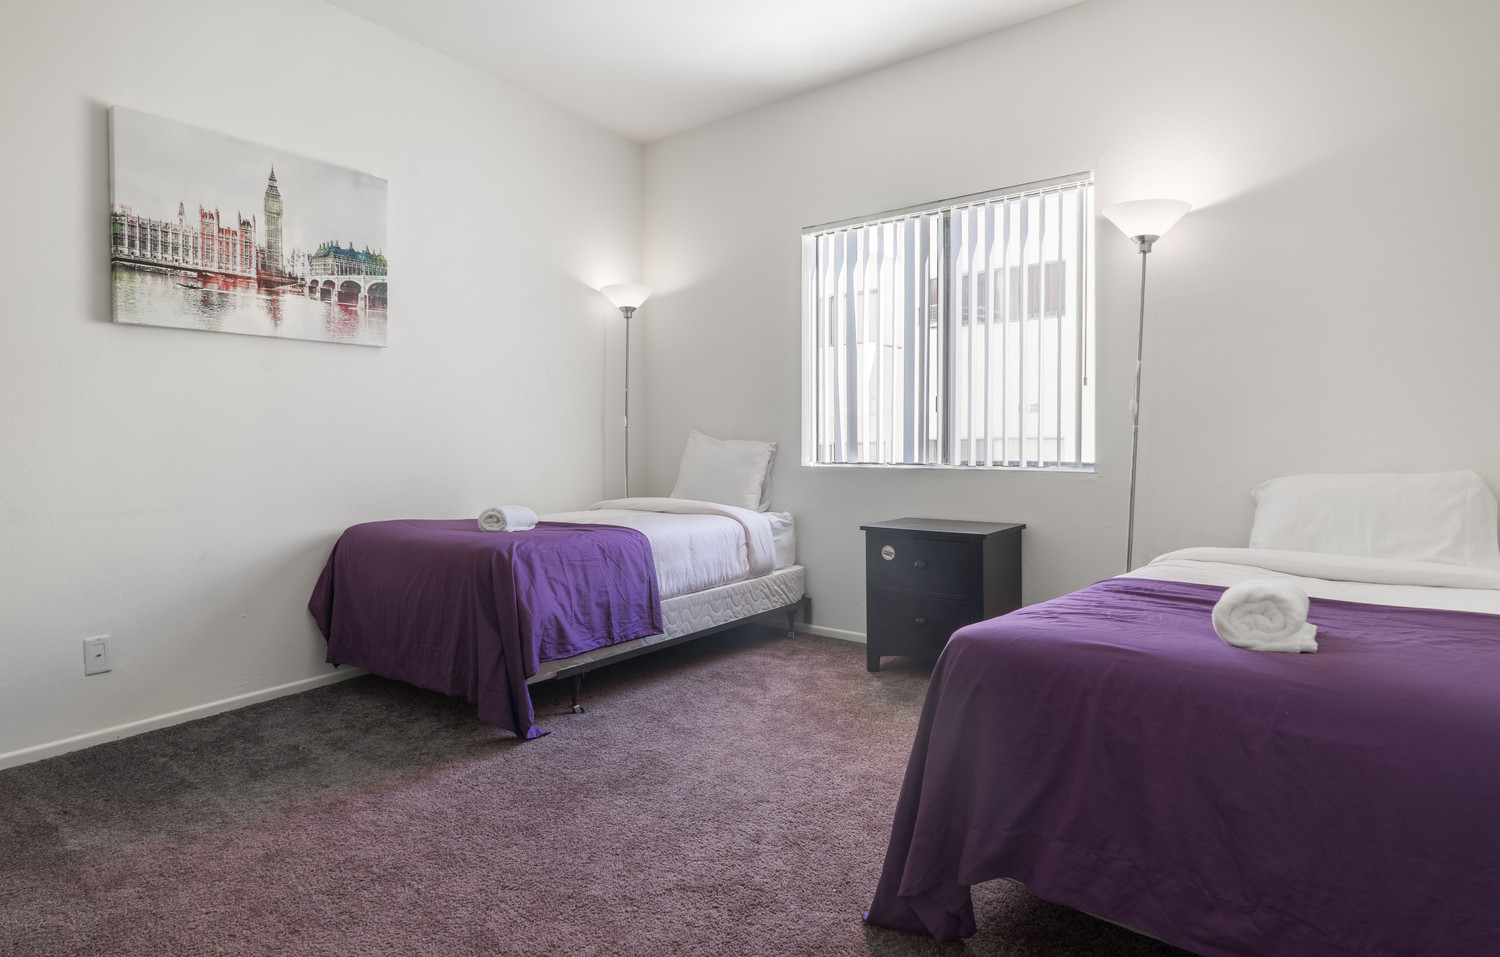 Shared Room in 3Bed 3Bath Apt for Rent in Ashton Towers